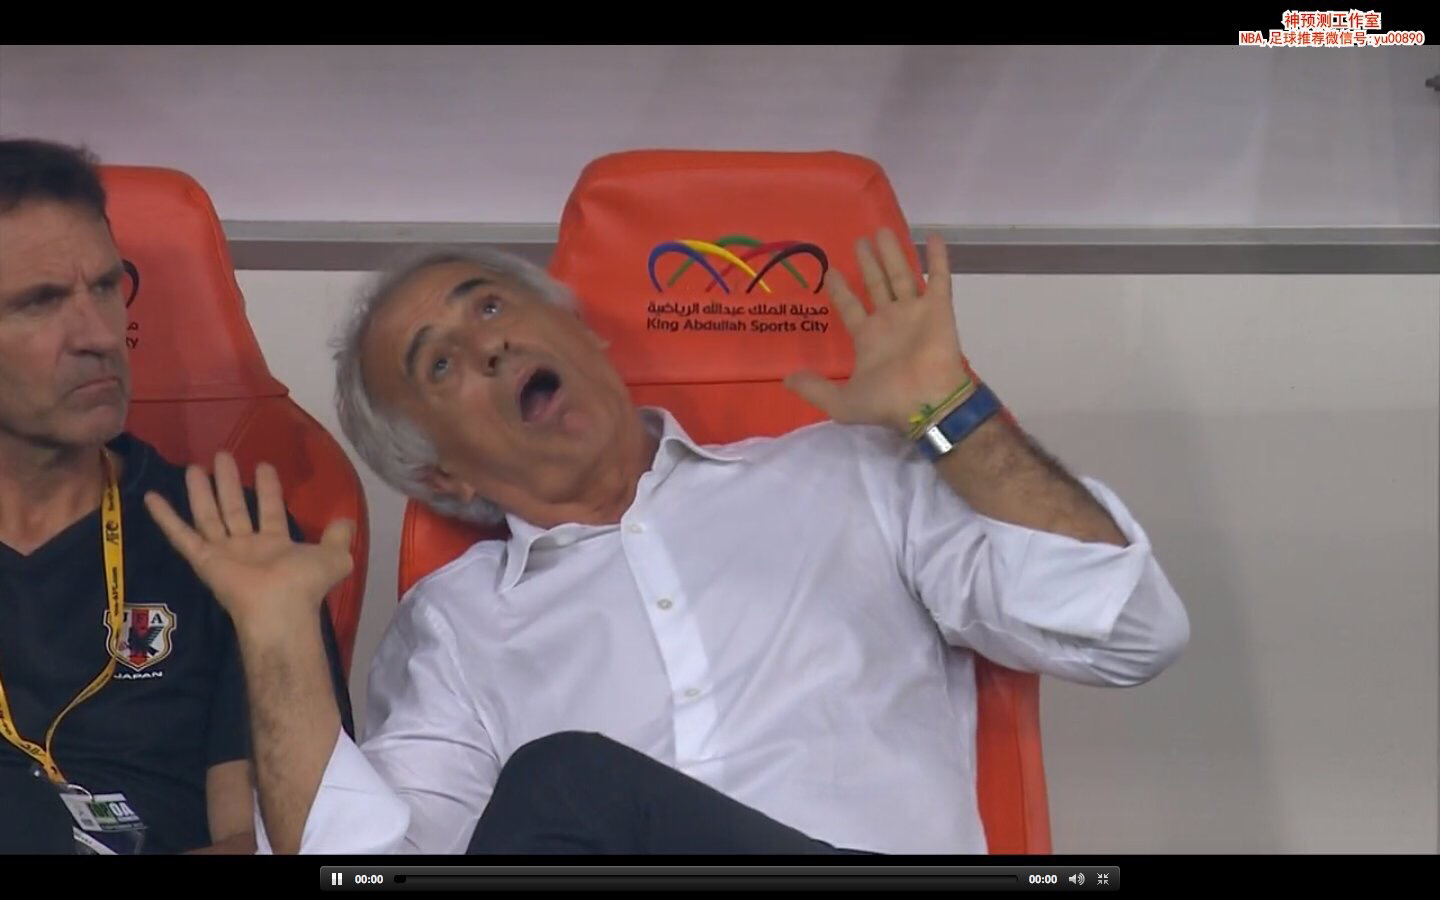 Japan has qualified for the WC! Halilhodzic does it again after Algeria 2014 and Ivory Coast 2010